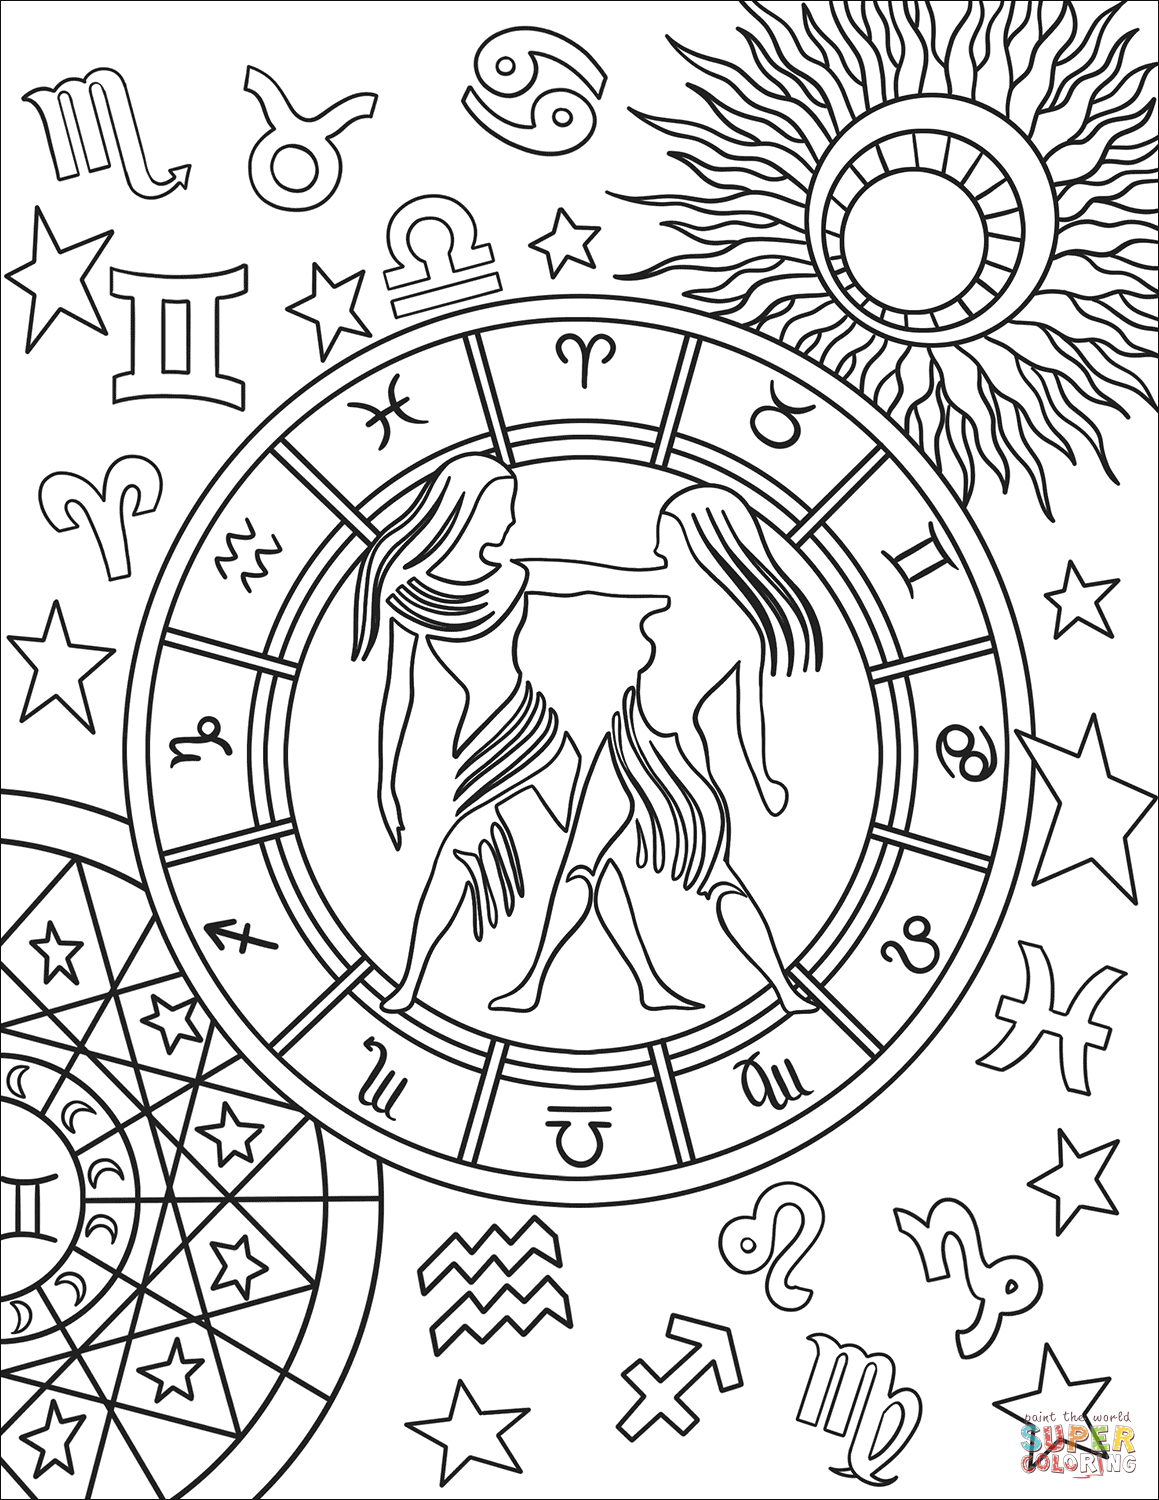 Gemini Zodiac Sign Coloring Page Free Printable Coloring Pages Zodiac Signs Colors New Year Coloring Pages Zodiac Signs Gemini